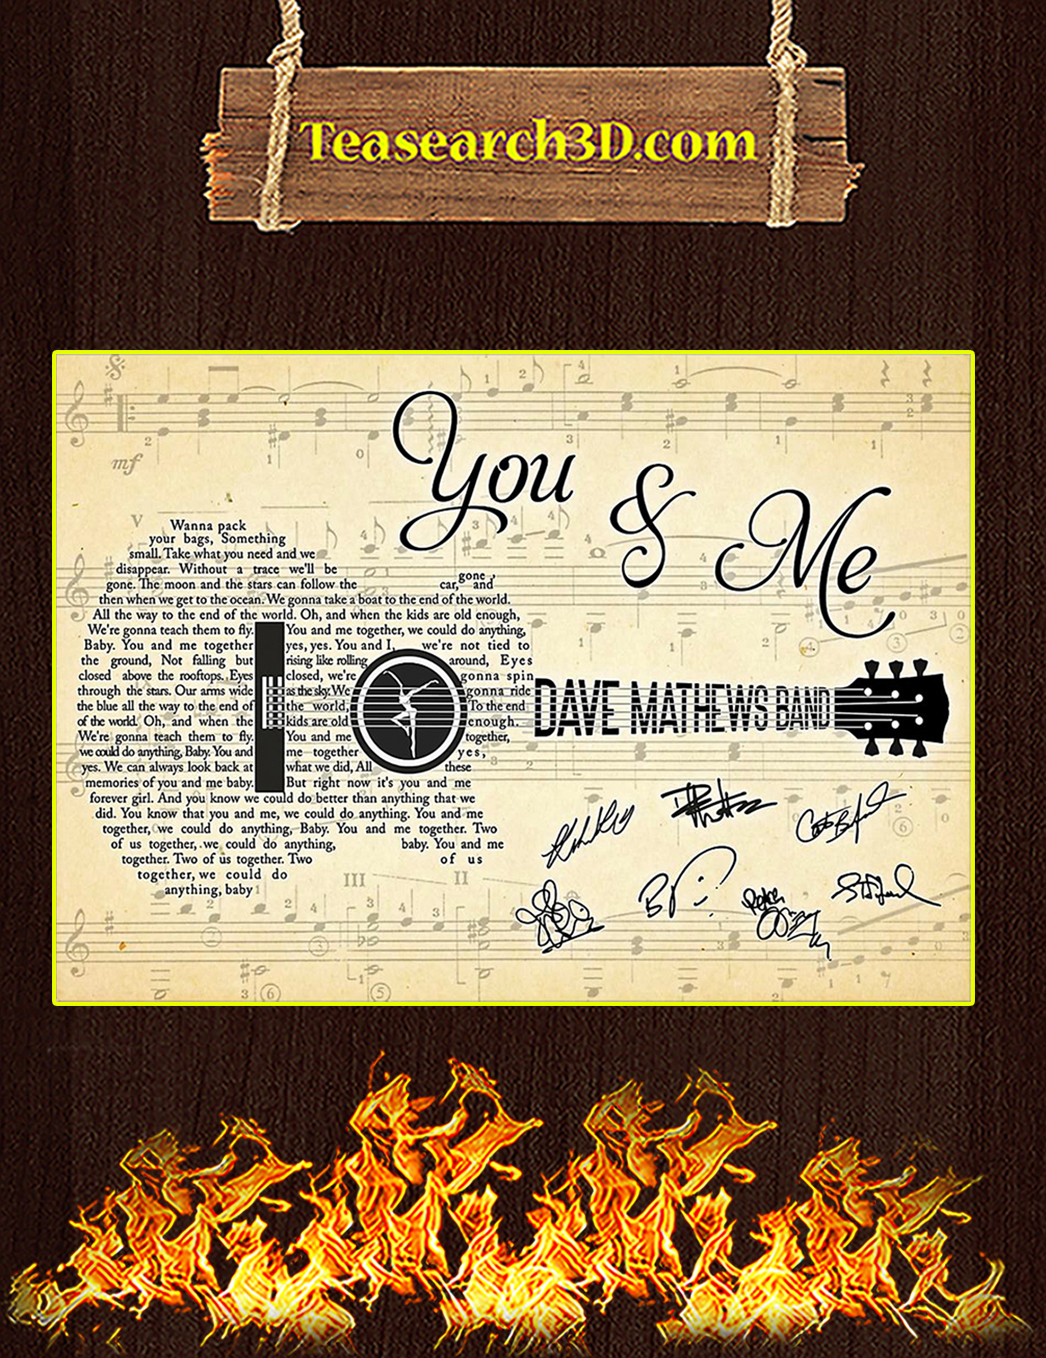 You And Me Dave Matthews Band Guitar Poster A1